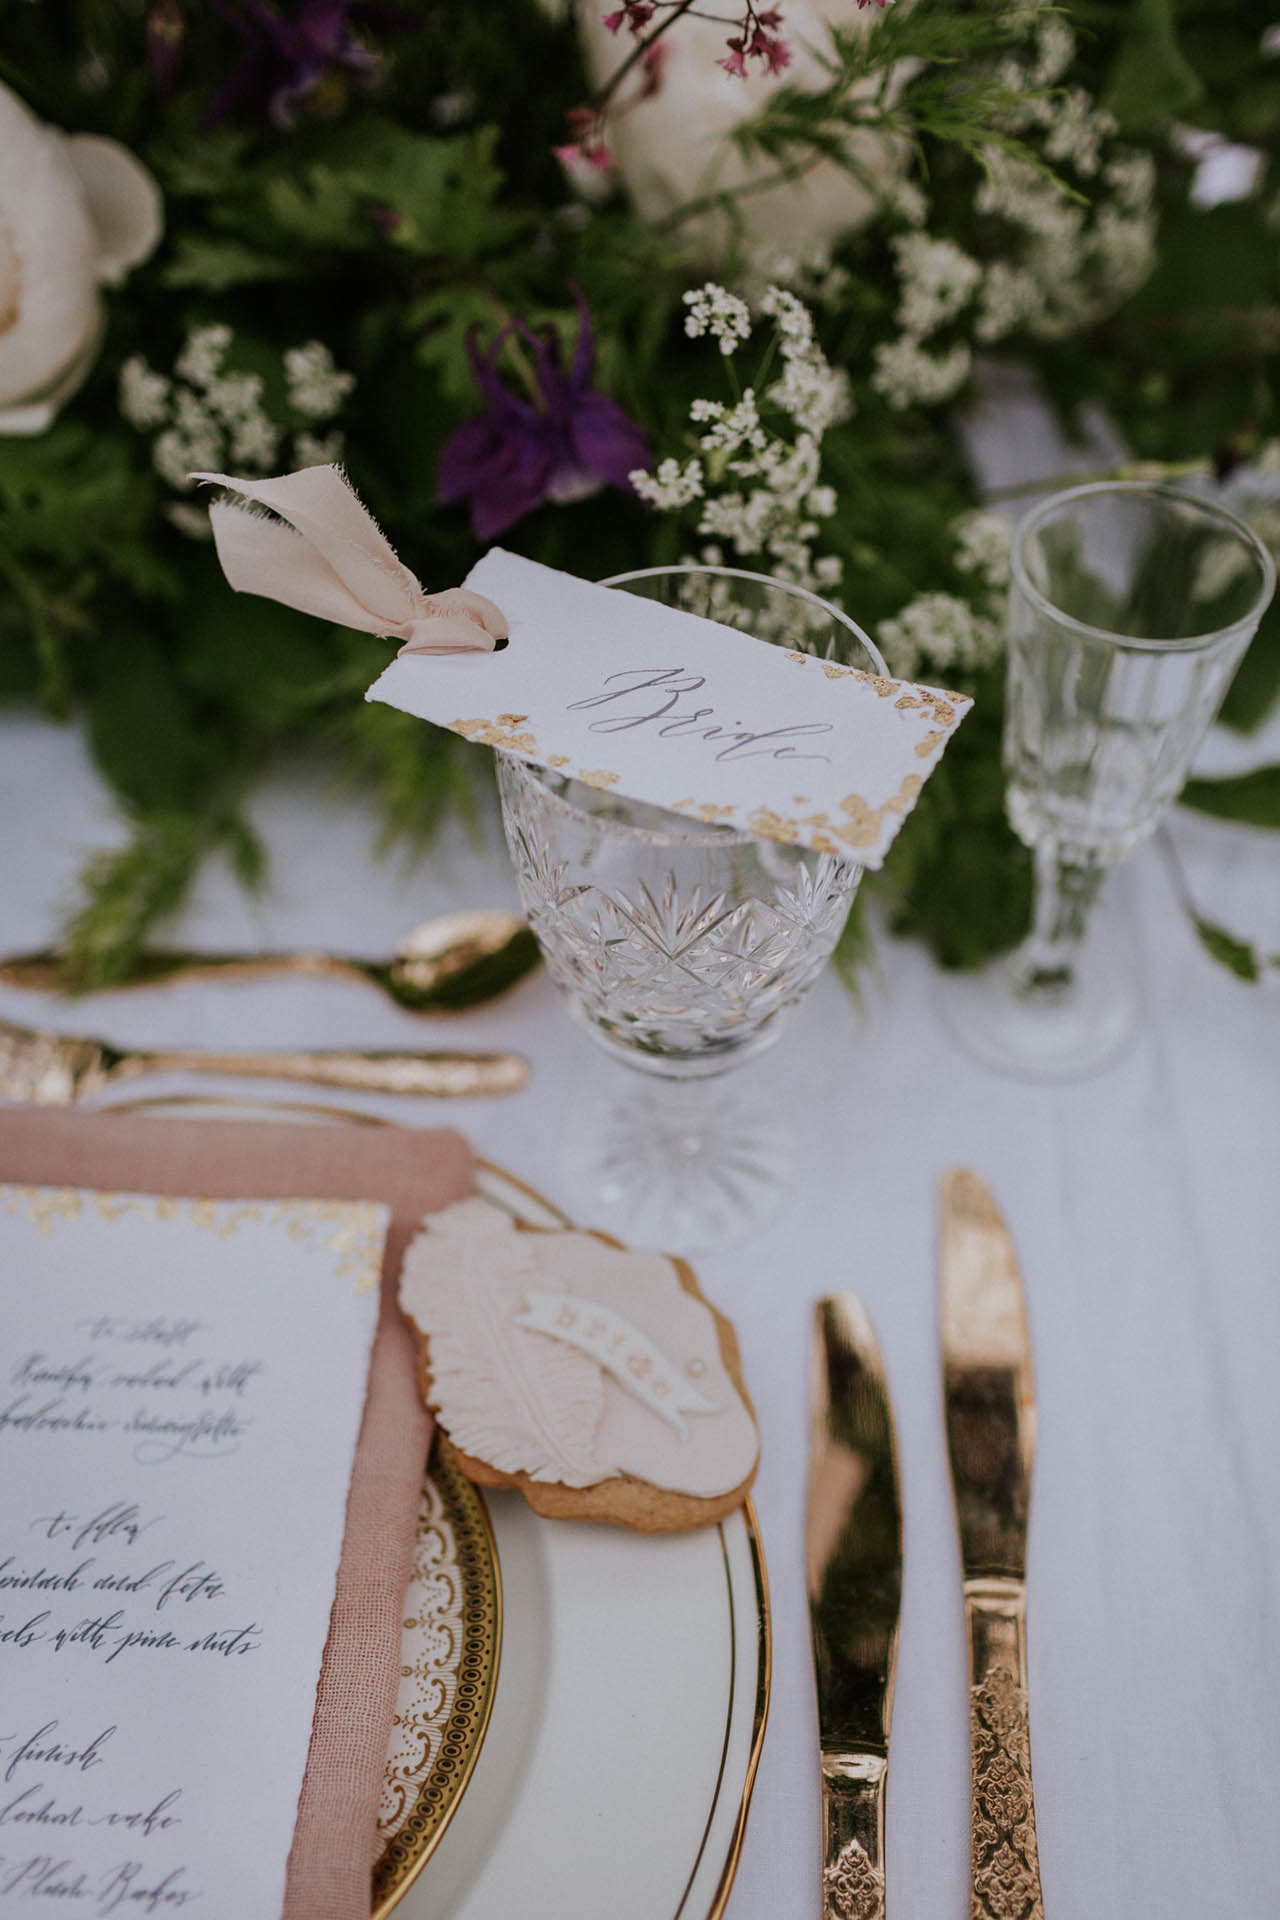 Romantic calligraphy details for a secret garden wedding in the English countryside.